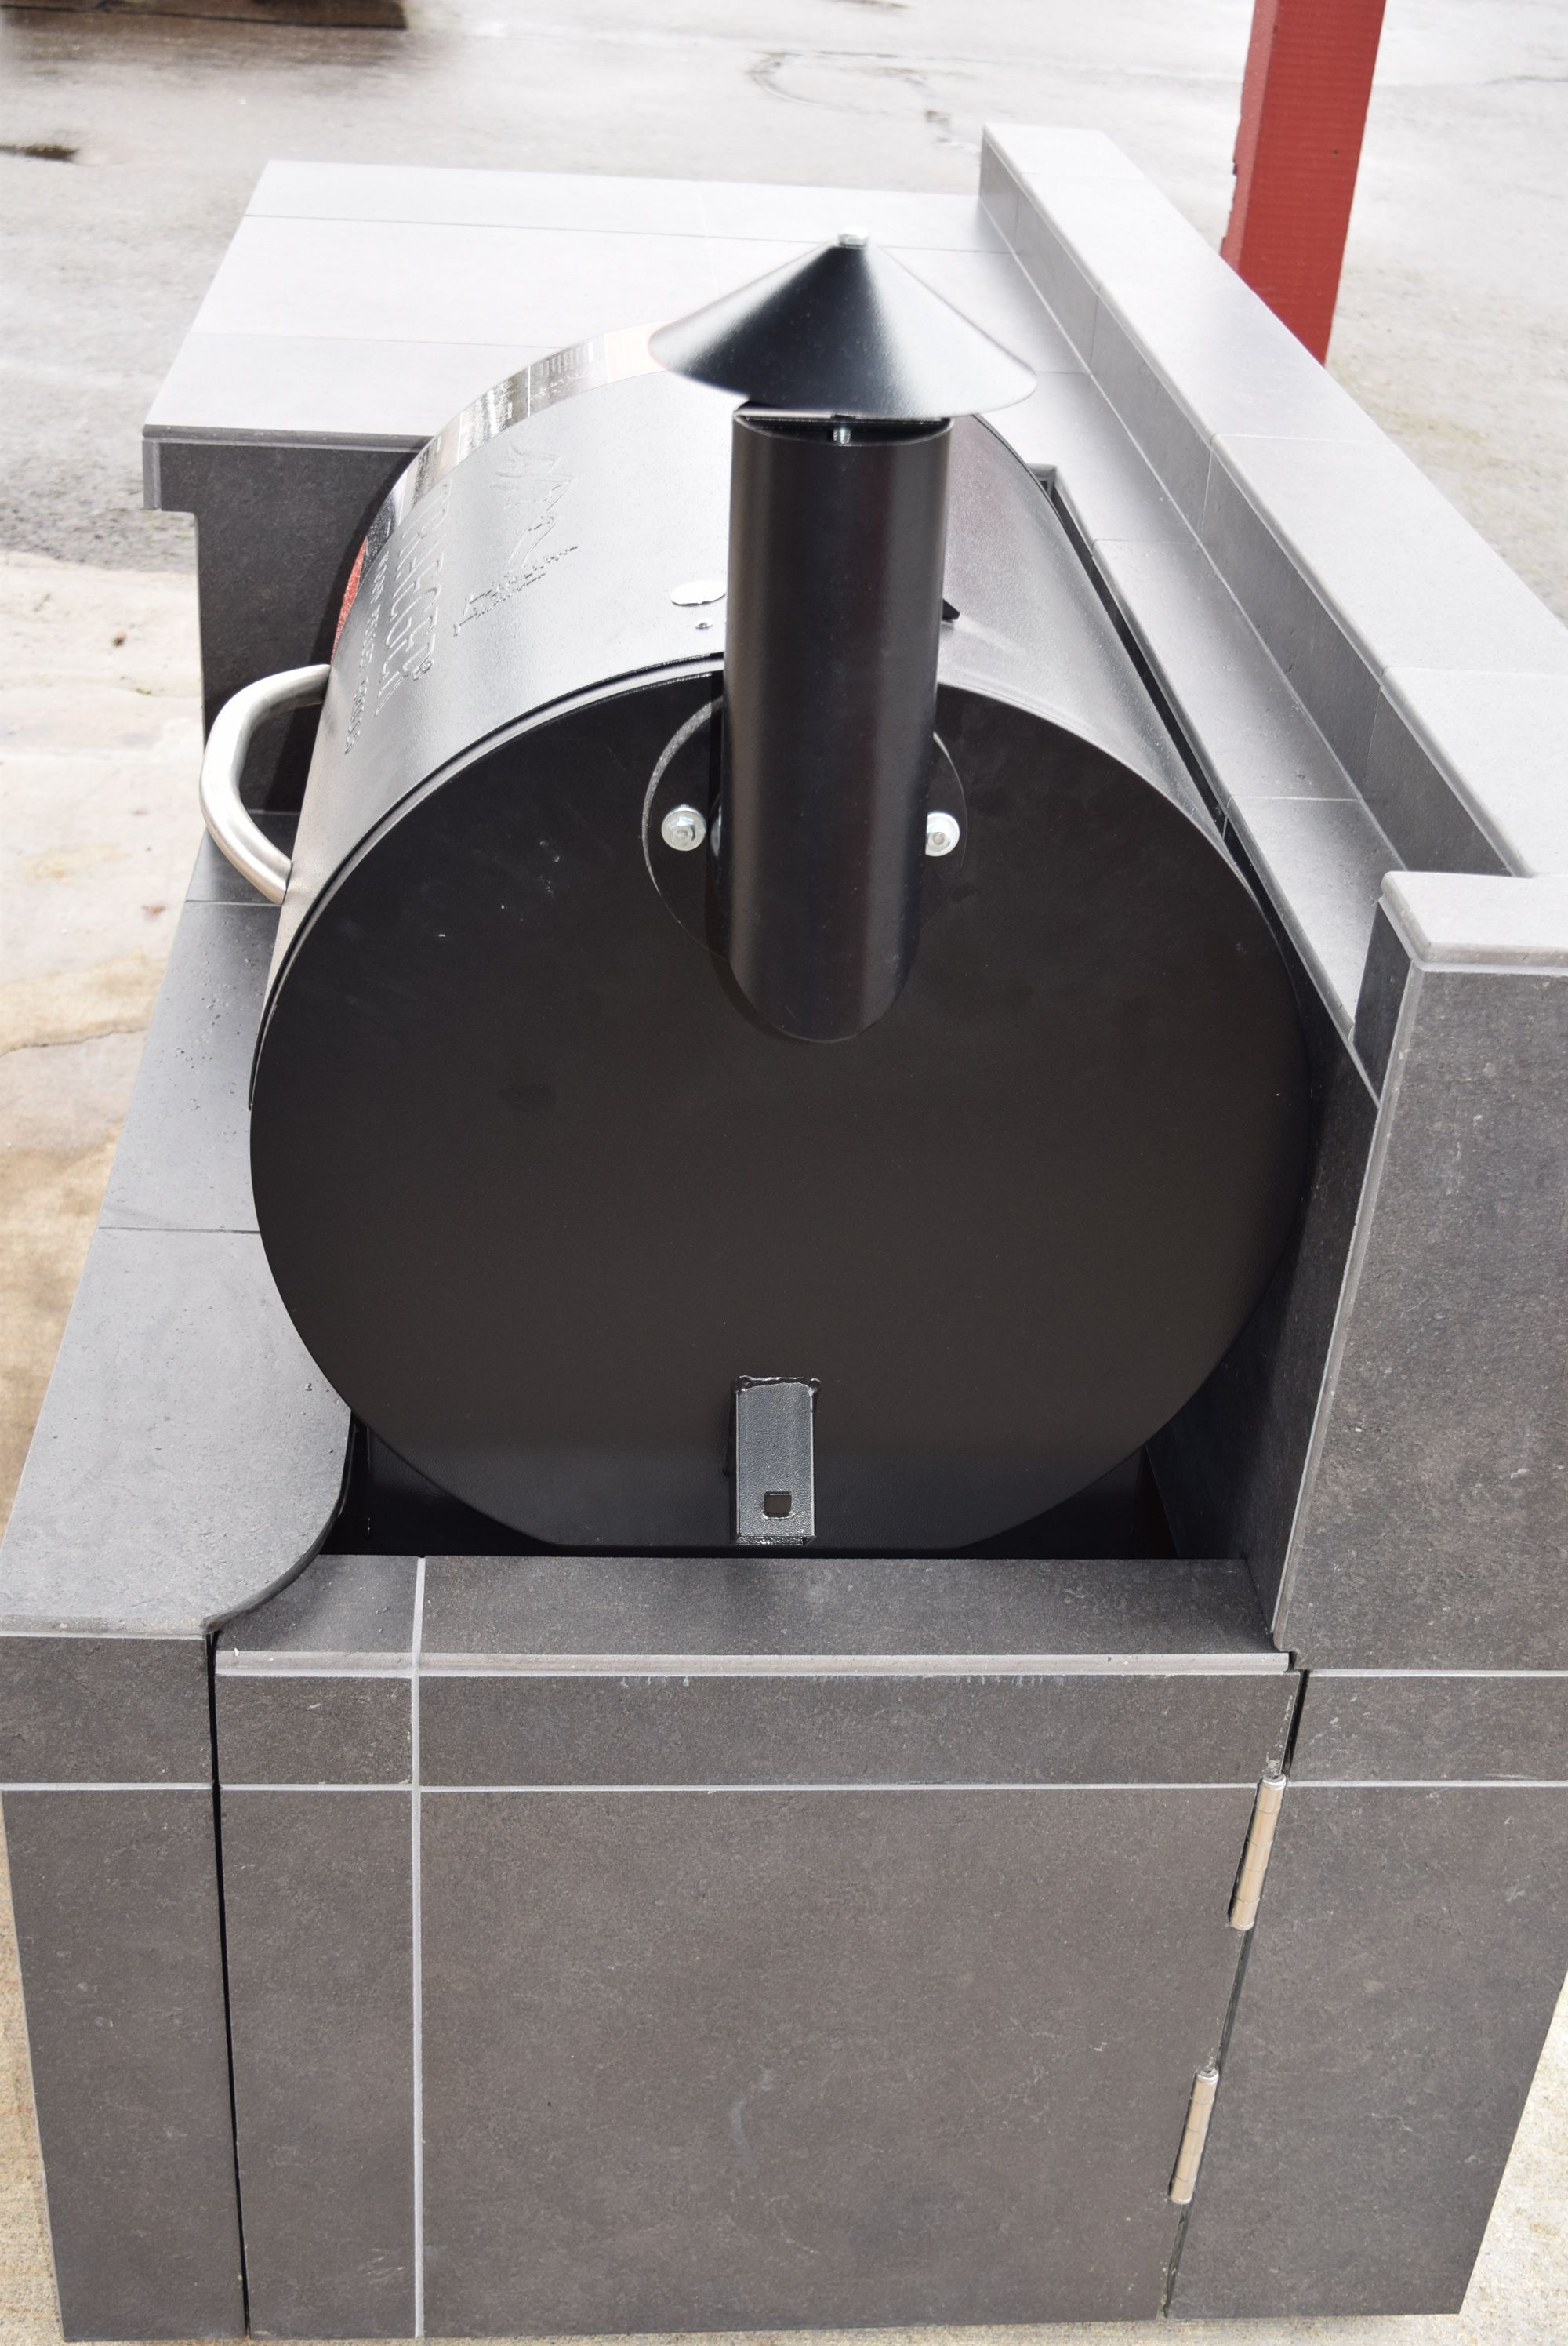 Built In Smoker Outdoor Kitchen: Traeger Smoker In This Outdoor Kitchen By Sunset Outdoor